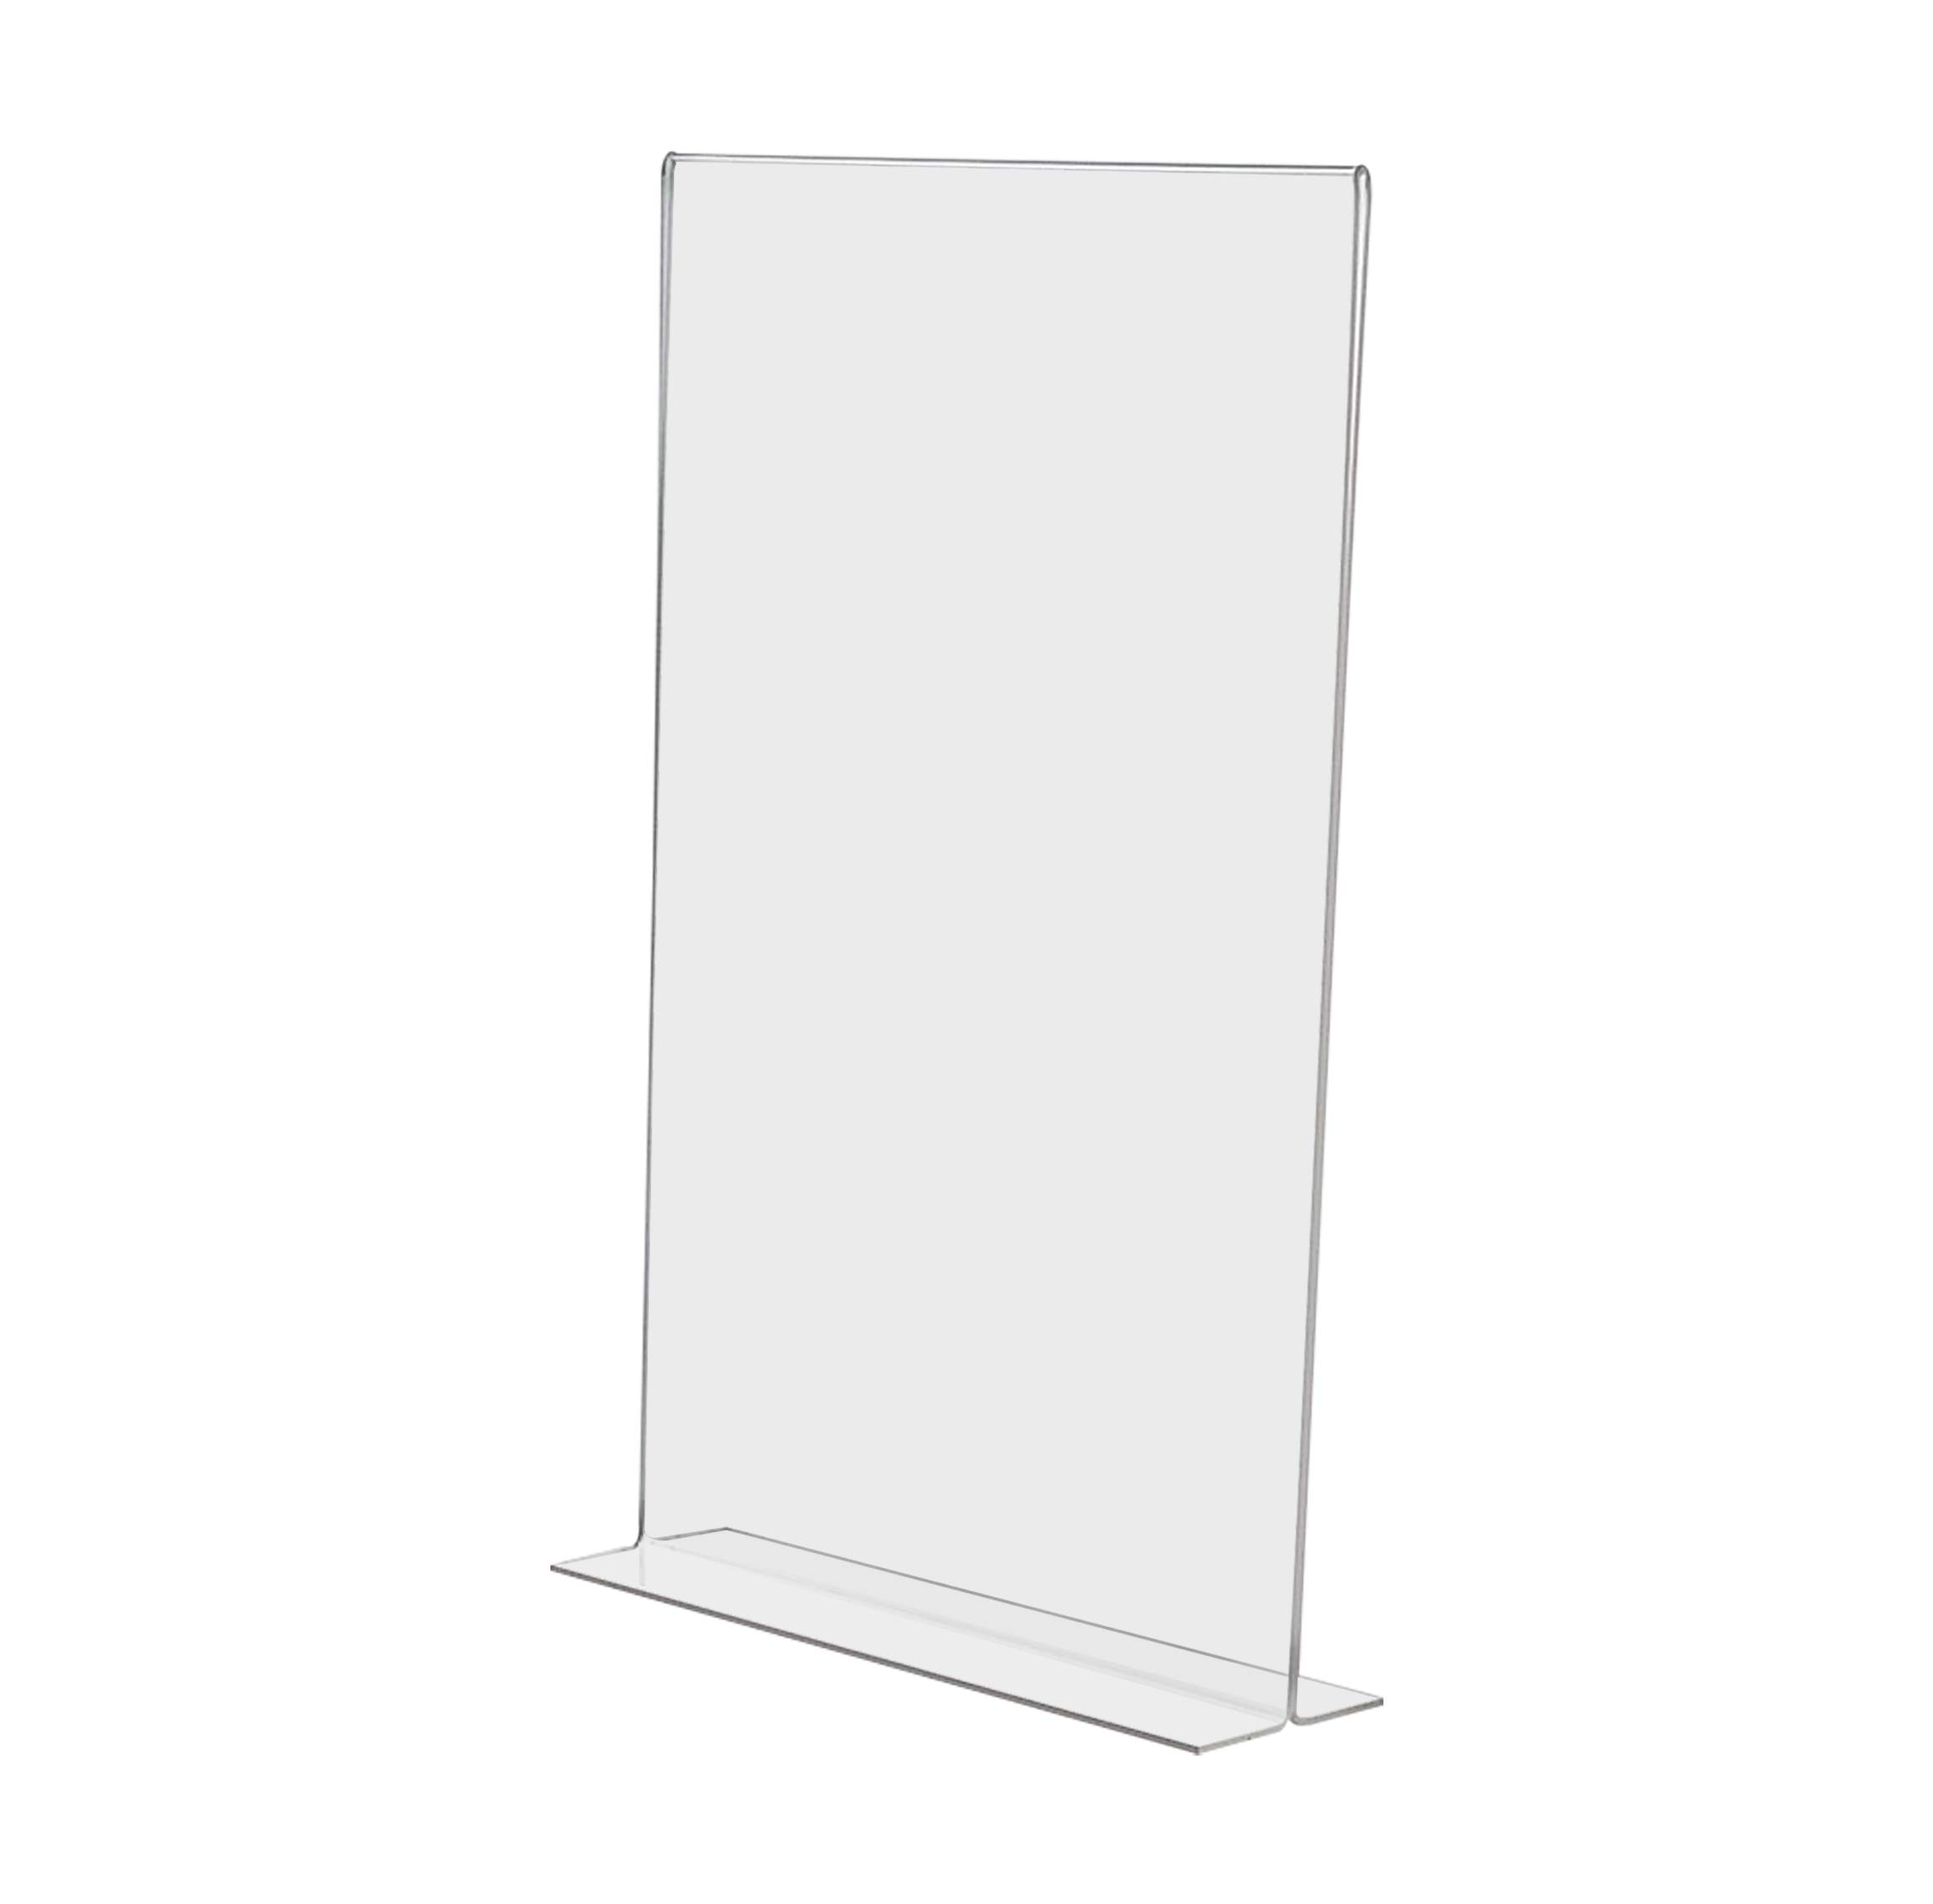 Marketing Holders Literature Flyer Poster Frame Letter Notice Menu Pricing Deli Table Tent Countertop Expo Event Sign Holder Display Stand Double Sided Bottom Loading 11''w x 17''h Pack of 2